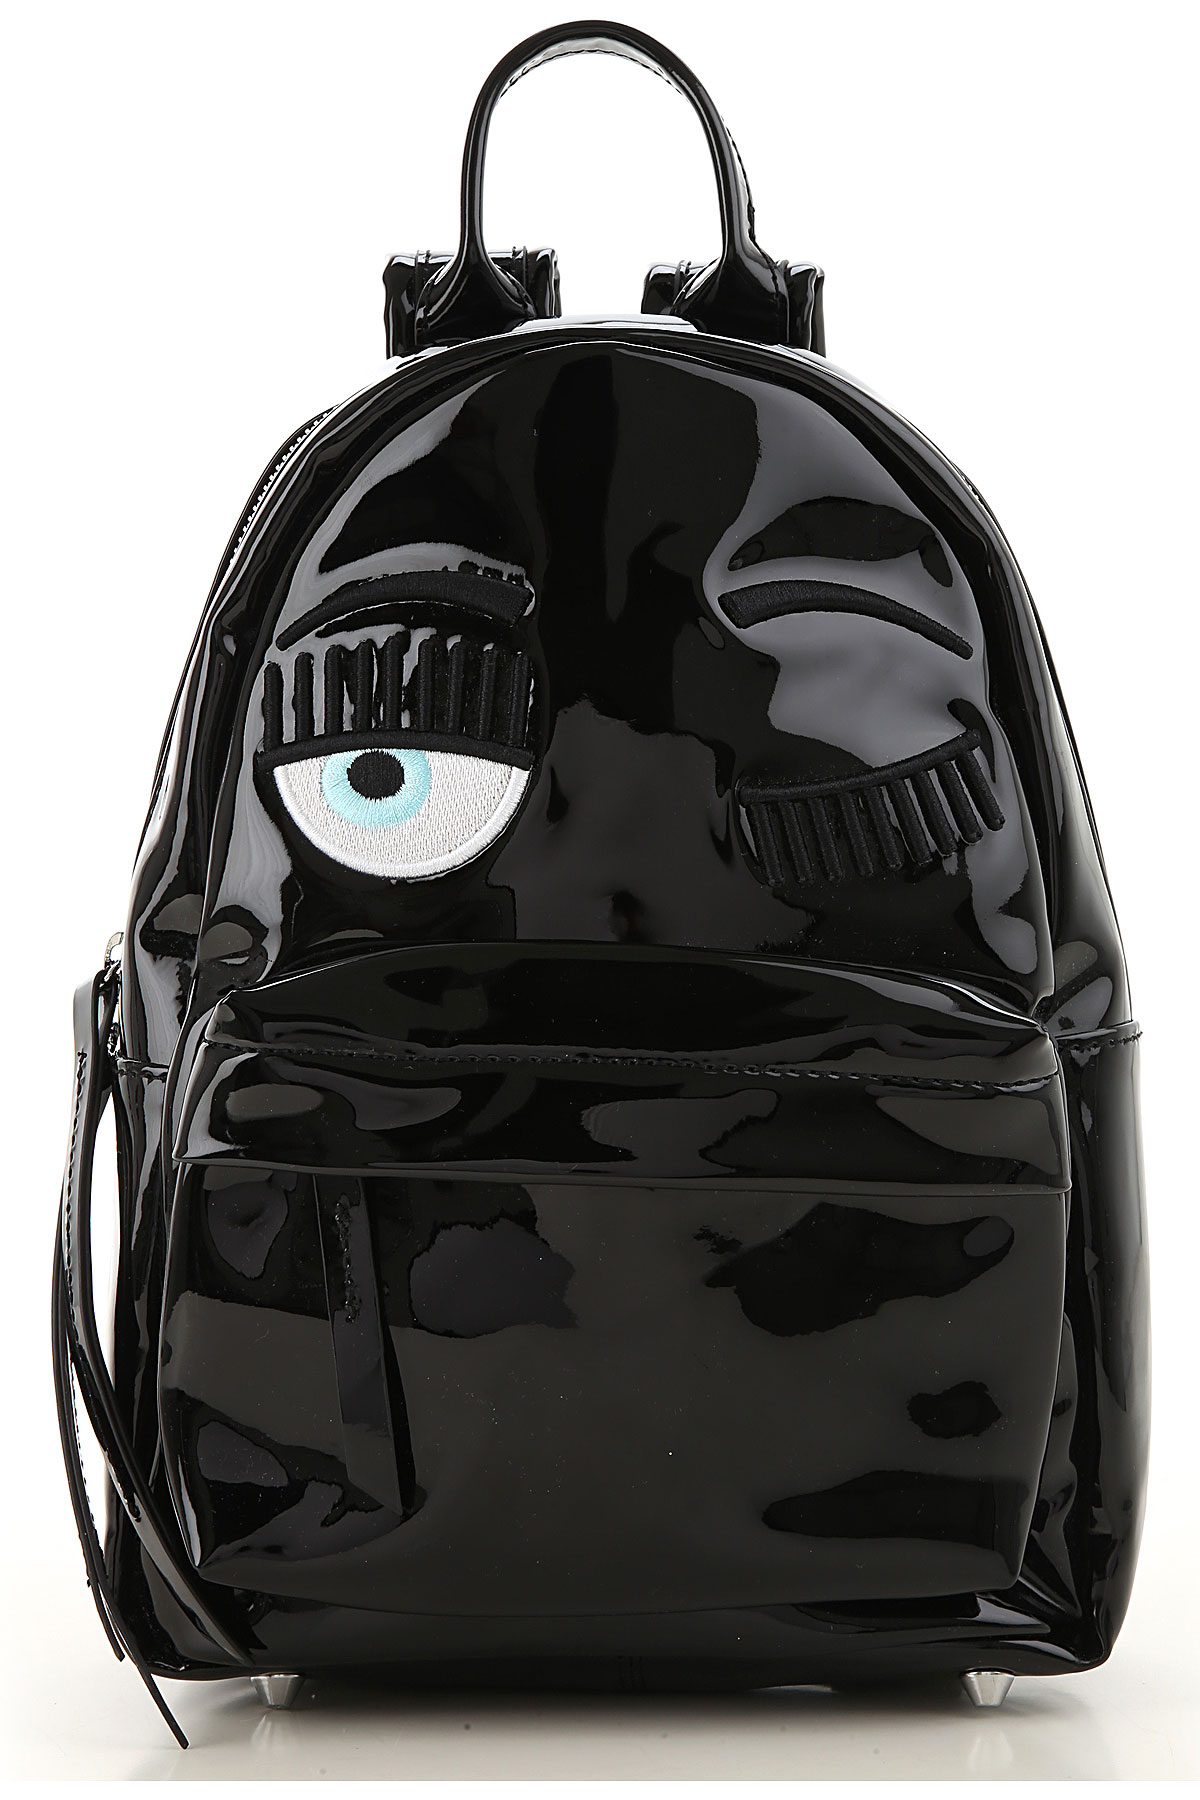 Chiara Ferragni Backpack for Women, Black, Patent Leather, 2019